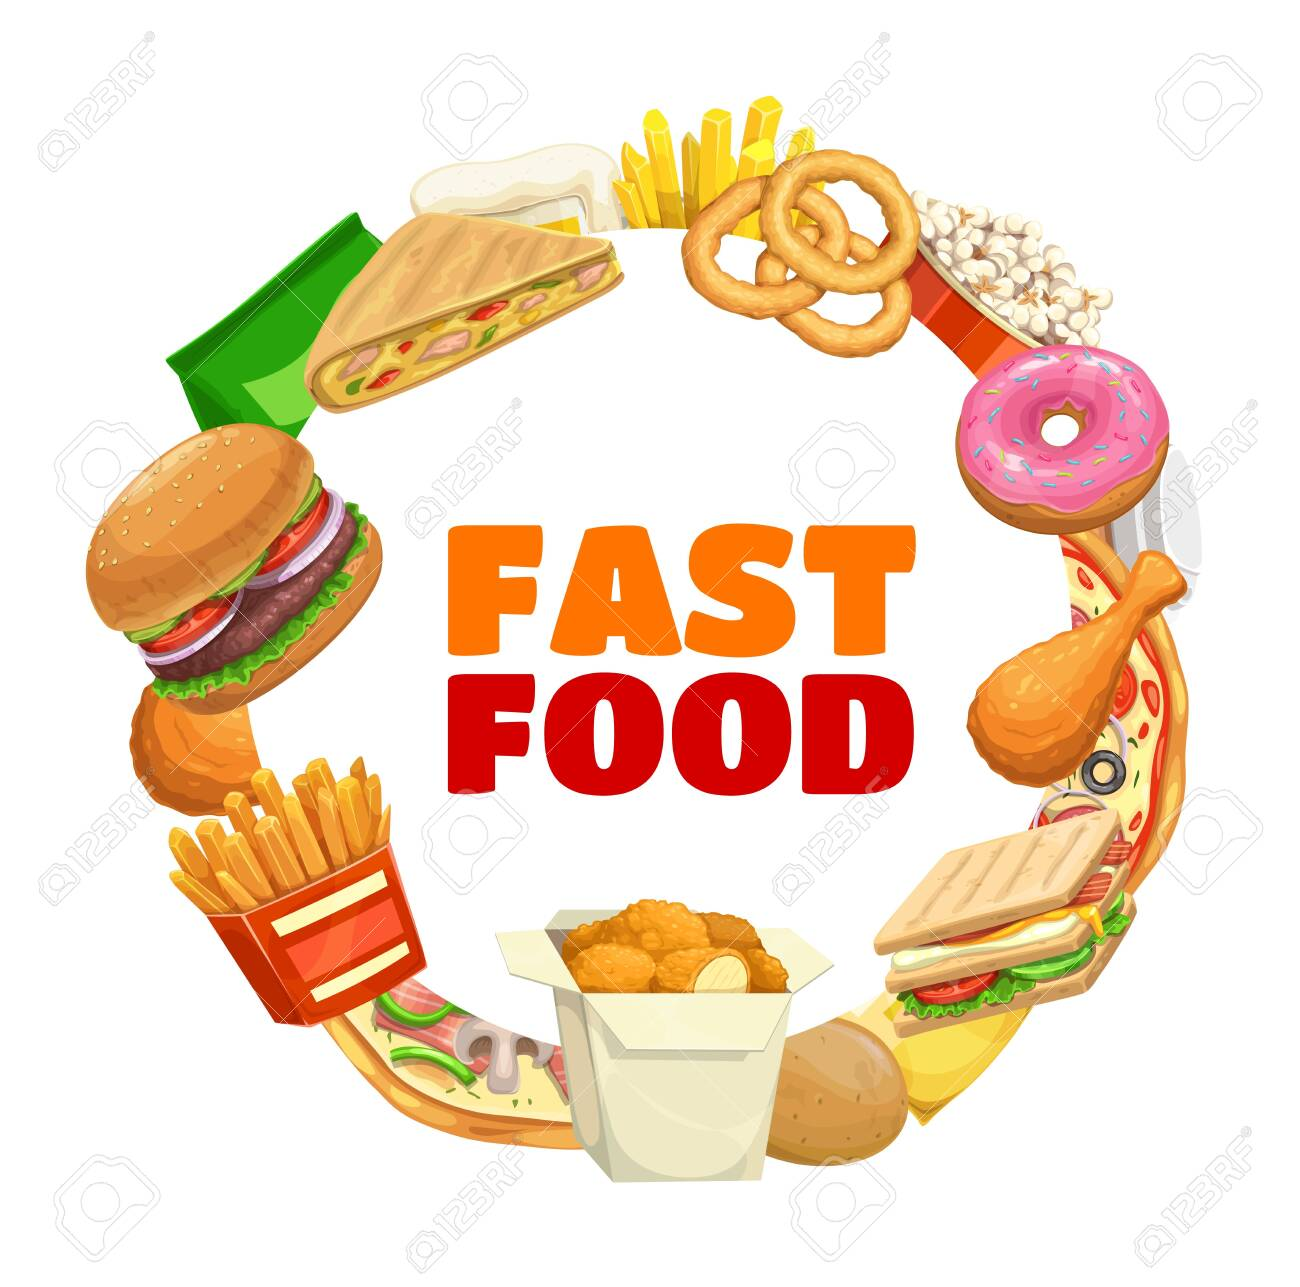 Burger And Pizza Menu Vector Fast Food Restaurant Drinks Meals Royalty Free Cliparts Vectors And Stock Illustration Image 152374019